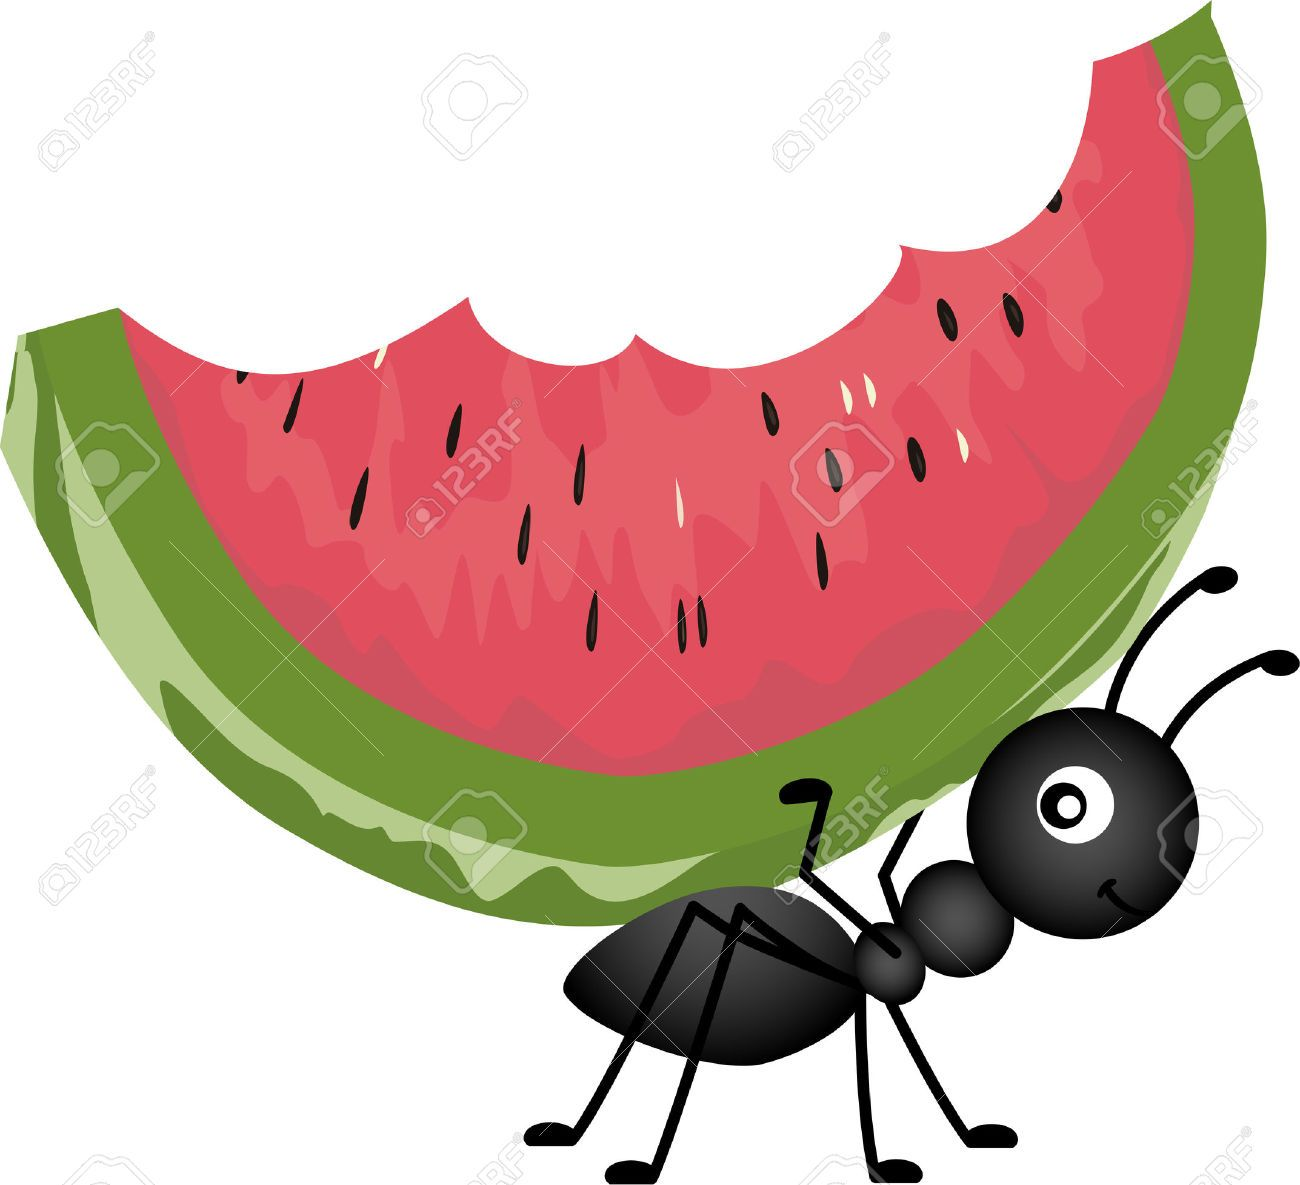 download Picnic ants clipart. Food ant carrying watermelon